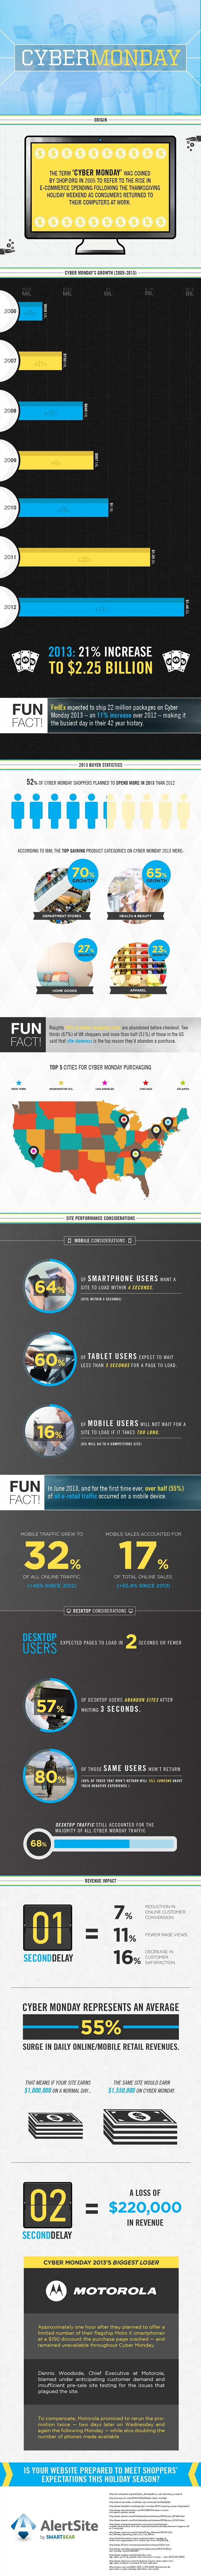 Cyber Monday 2013 Stats-Infographic